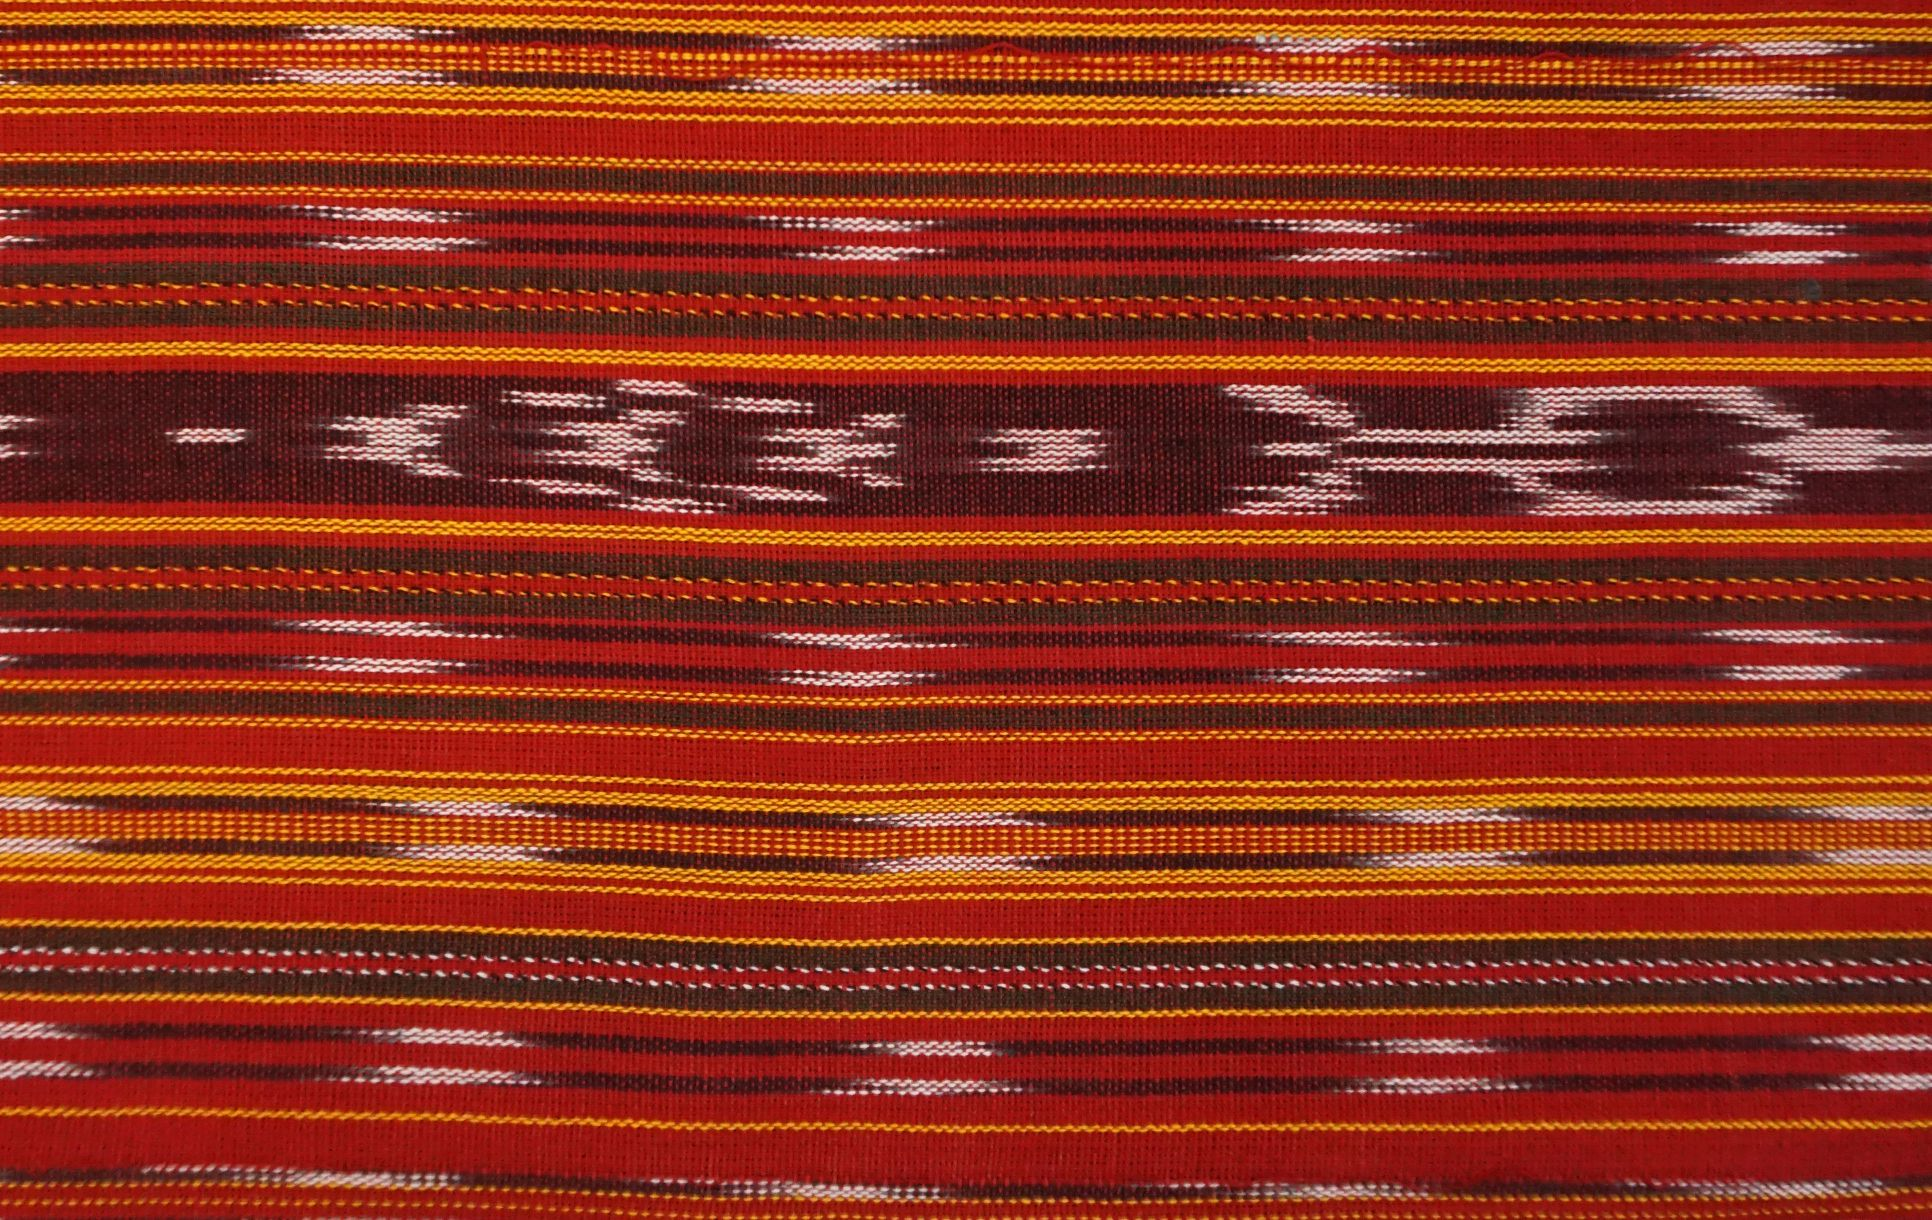 Jaspe Cloth (Ikat) Red Orange Yellow